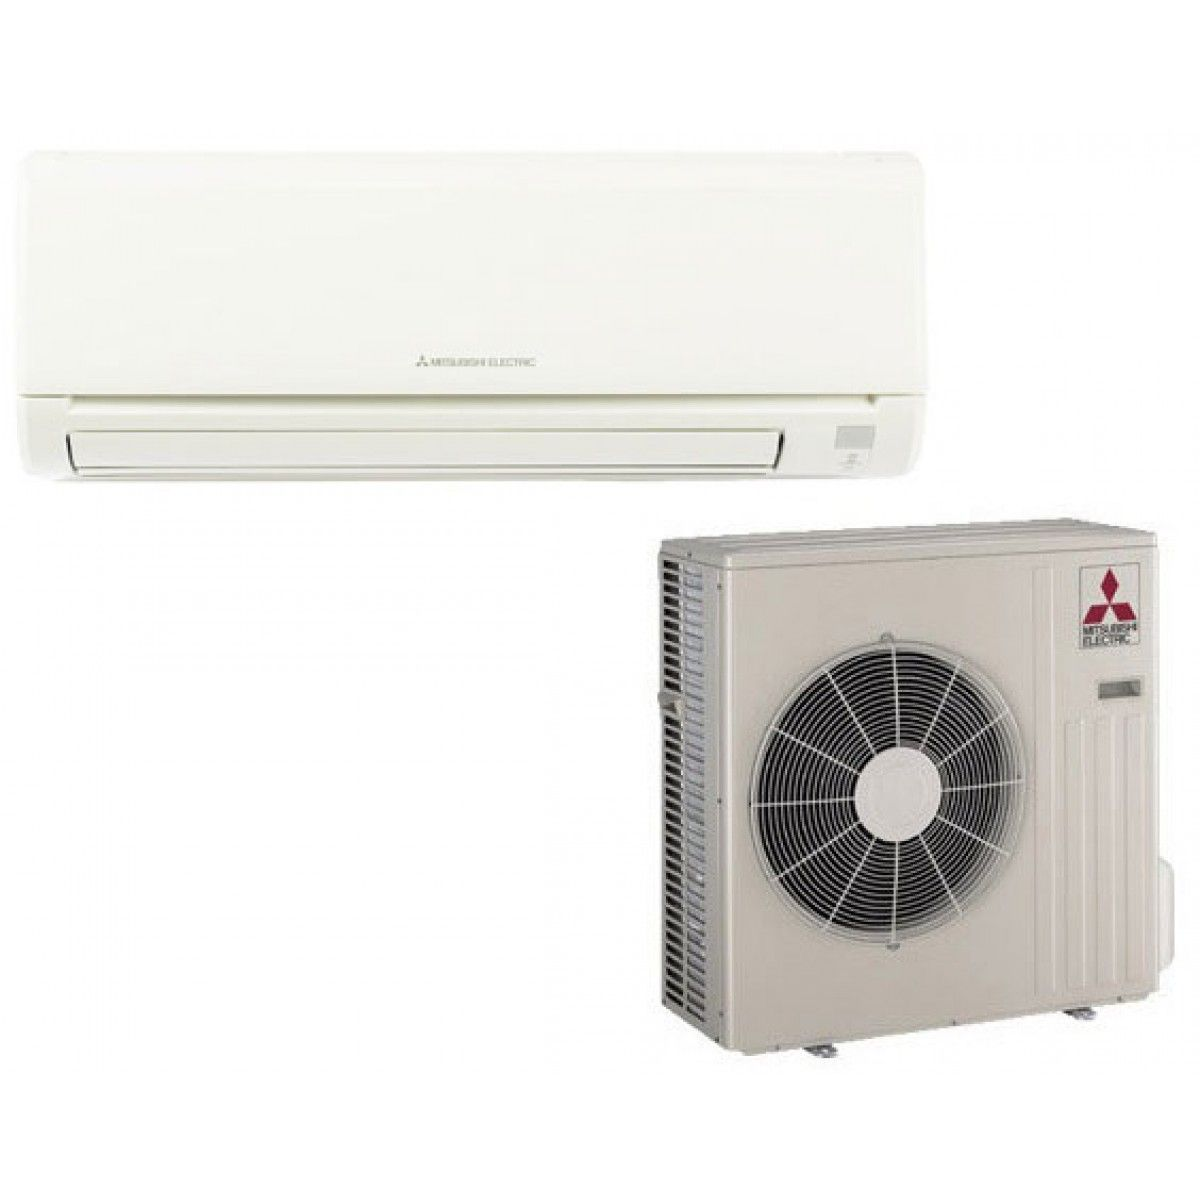 Air Conditioner moreover Mitsubishi Wall Mounted Air Conditioner Units  #6B3741